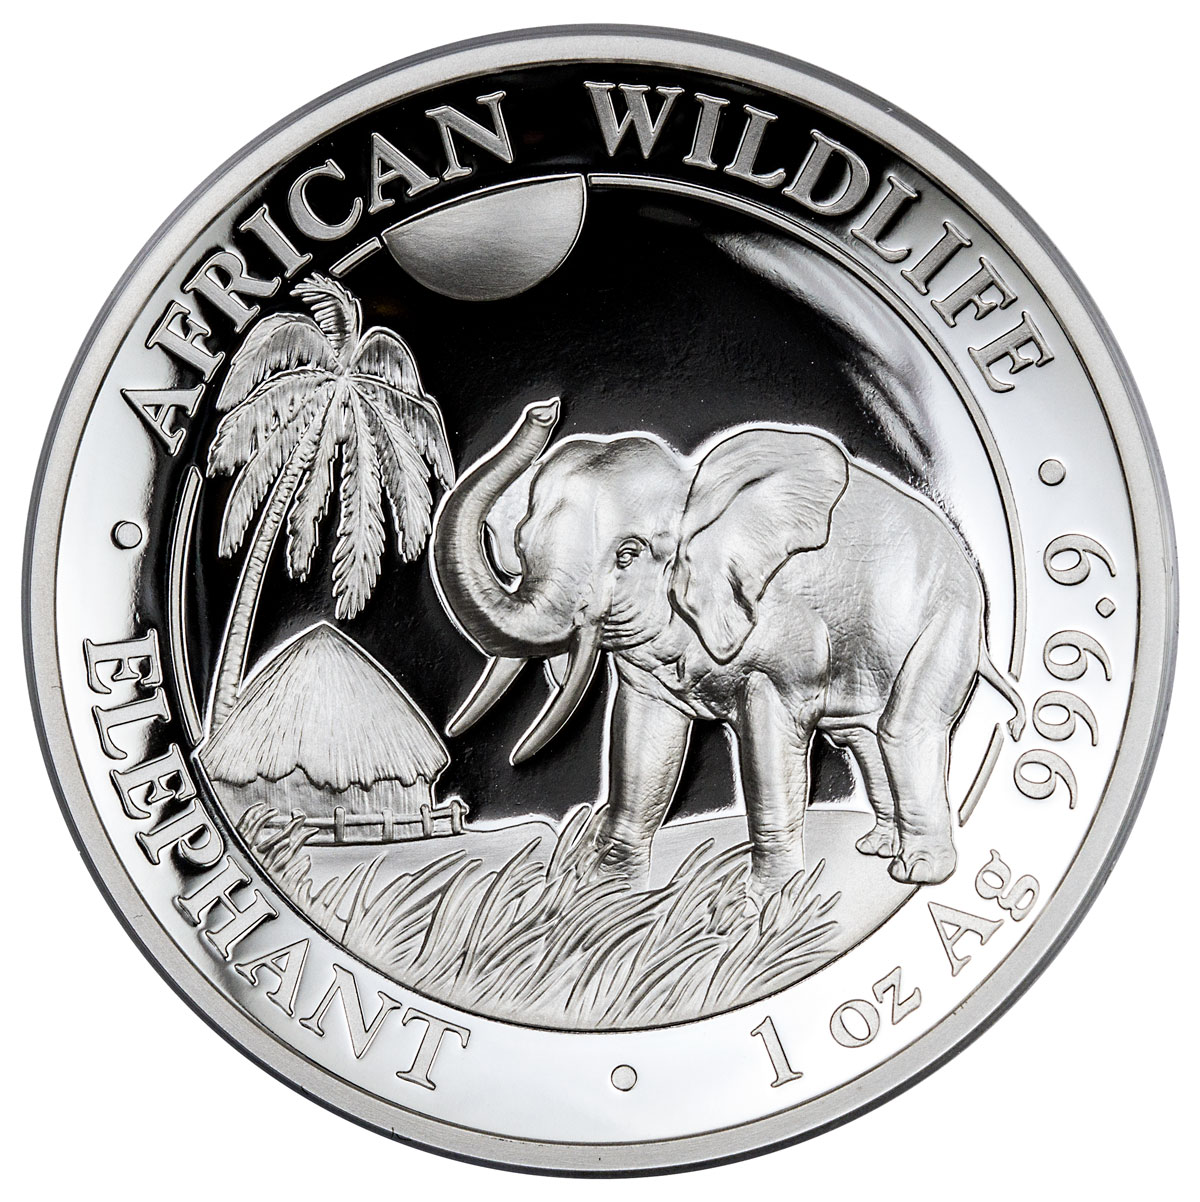 2017 Somalia 1 oz High Relief Silver Elephant Proof 100S Coin GEM Proof (OGP)